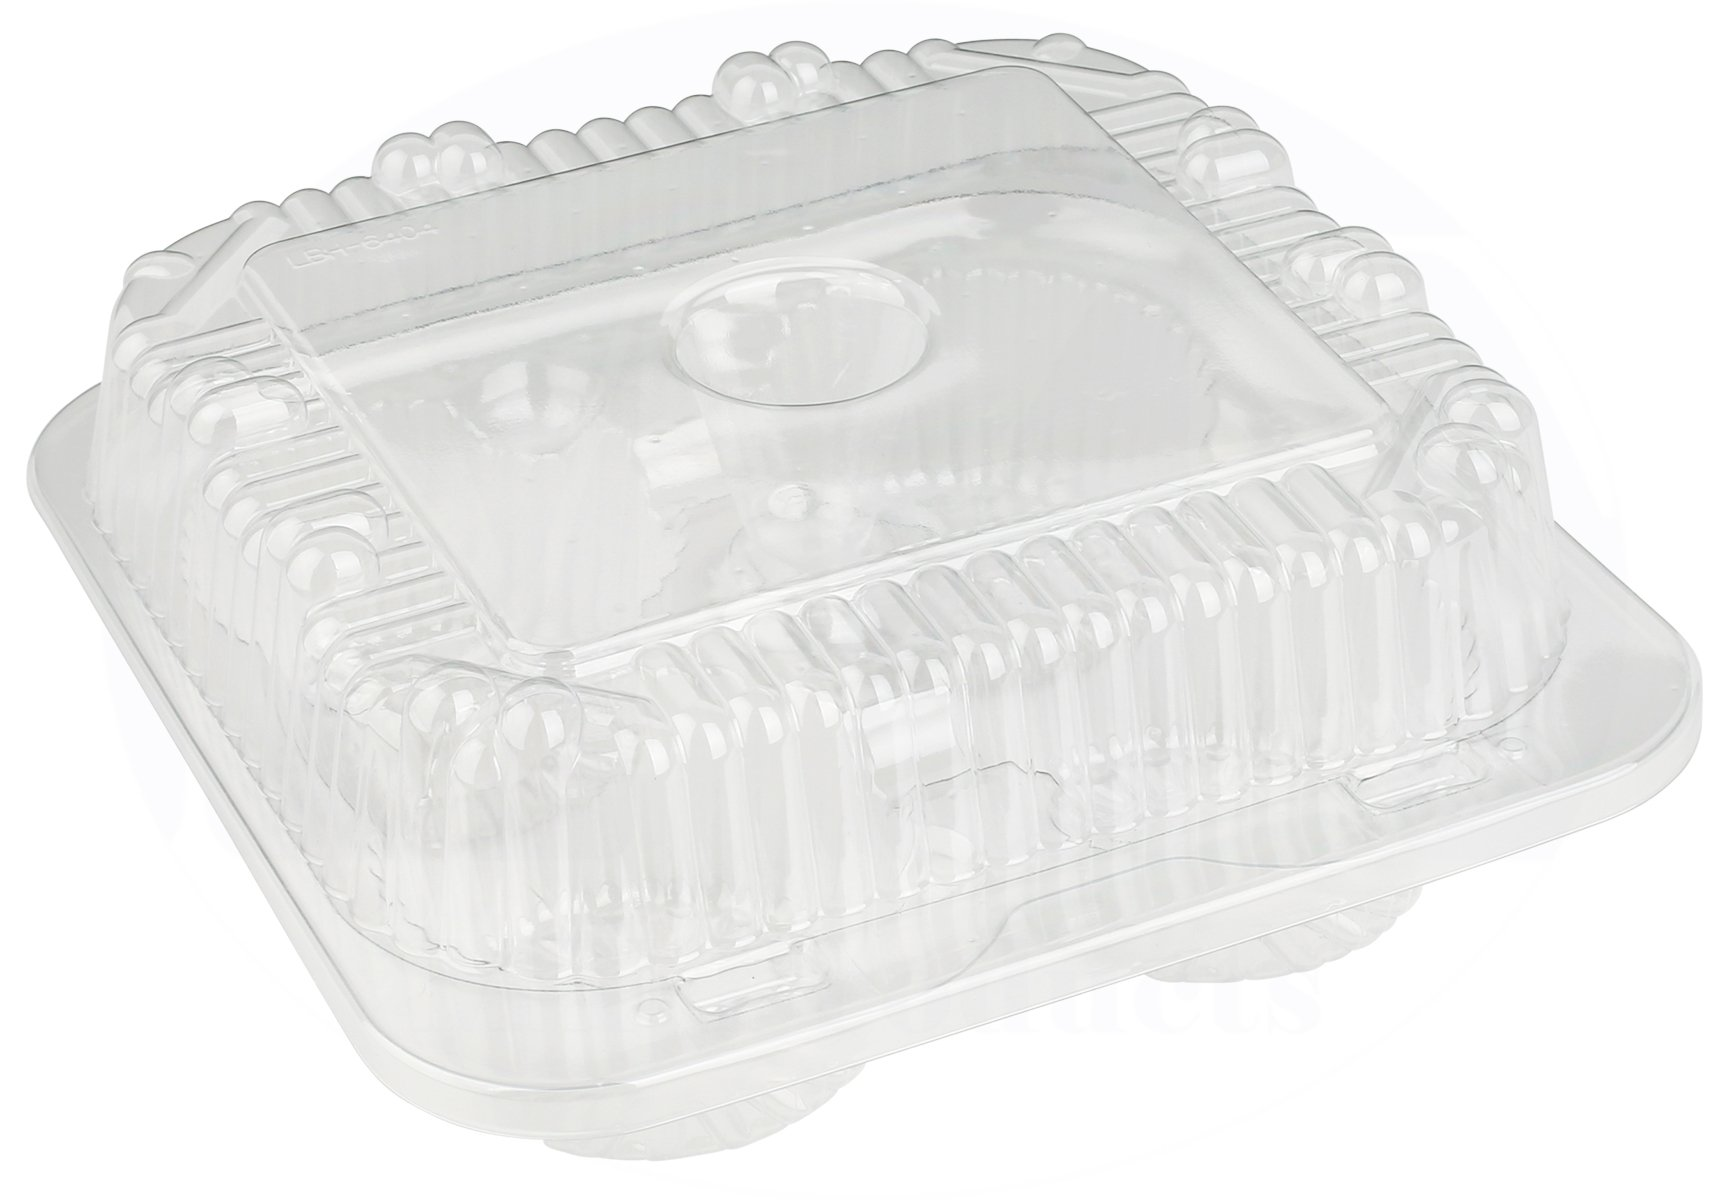 4 Compartment Hinged Clear Cupcake/Muffin Takeout Container by MT Products - (15 Pieces)